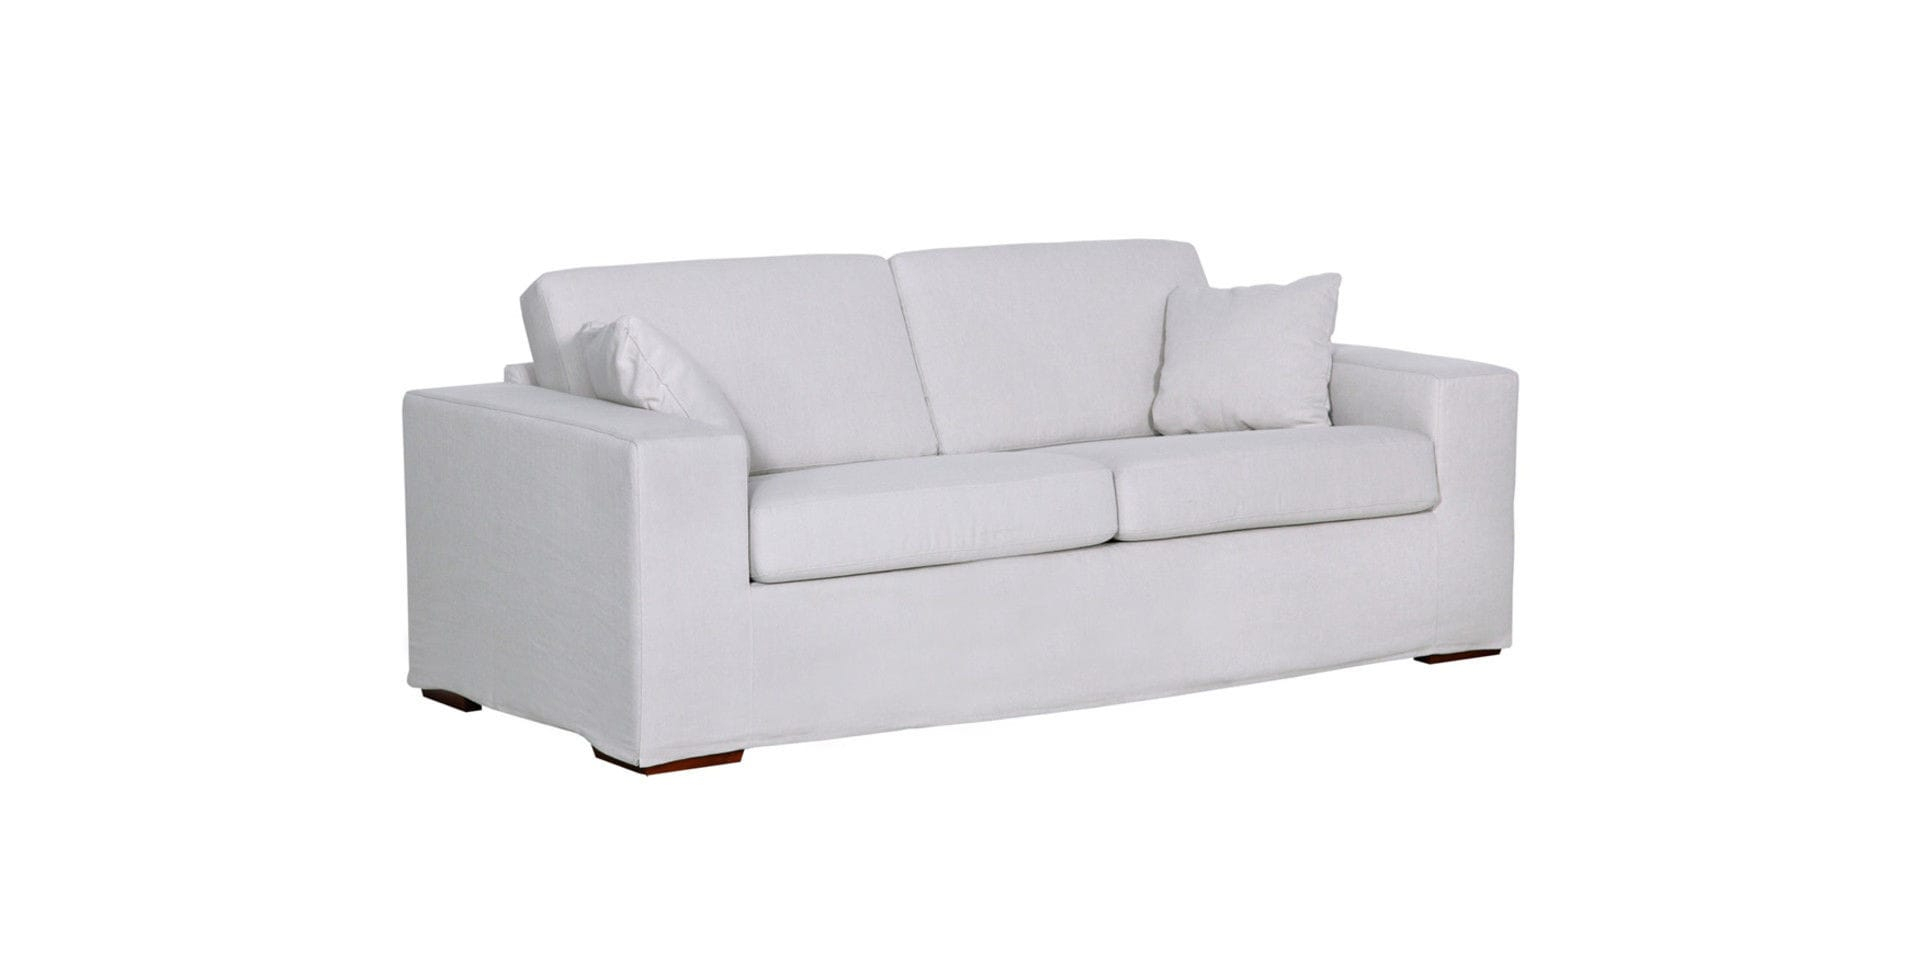 Sofa Bed / Contemporary / Fabric / 2 Person – Antares – Sits Sp. Z O.o (Image 18 of 20)